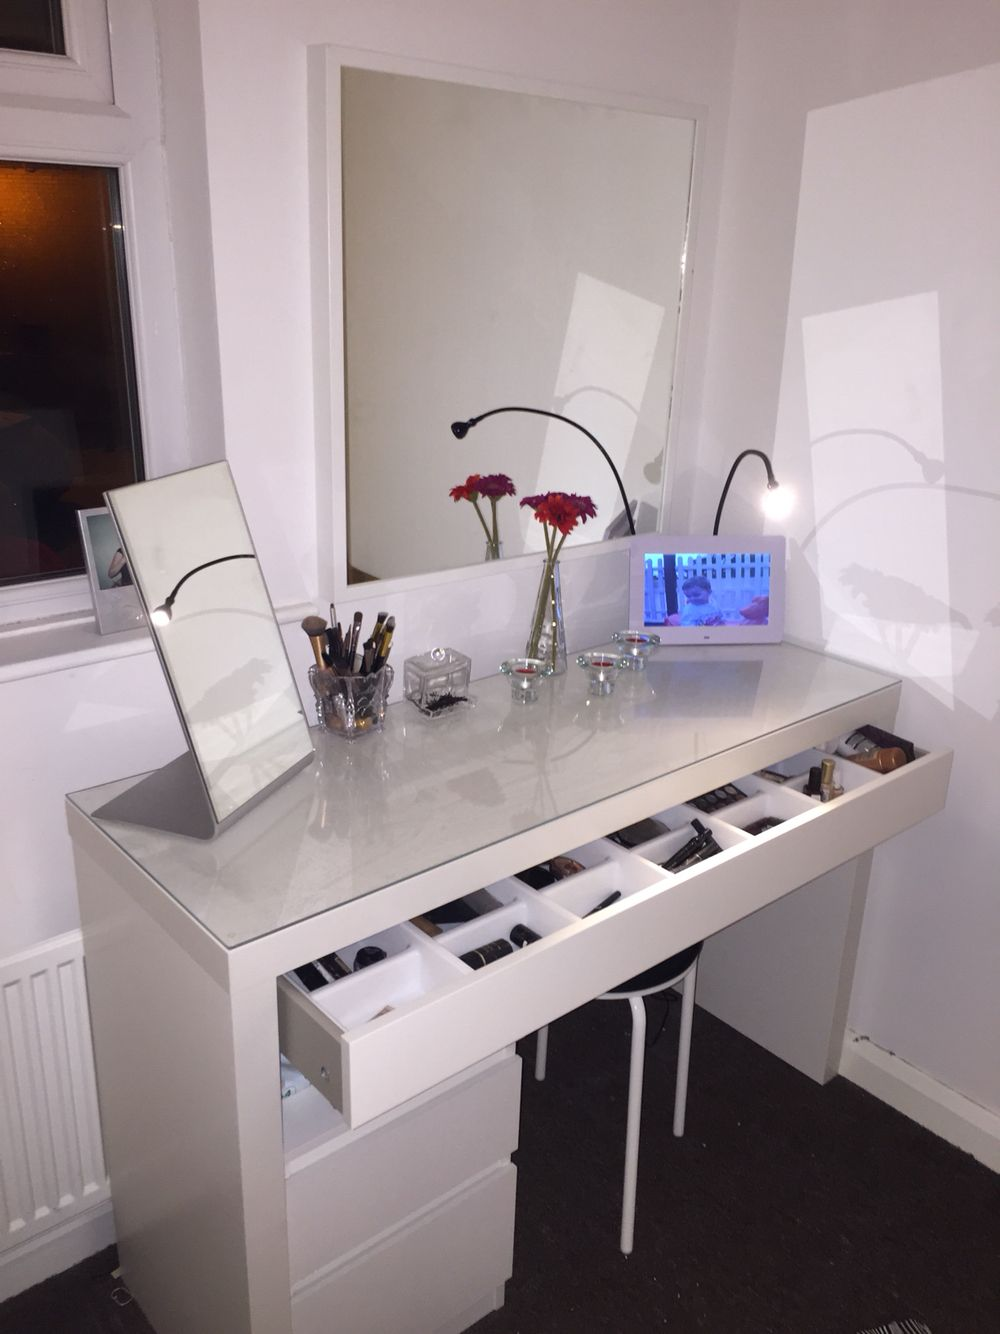 Malm dressing table ikea glam decor pinterest malm dressing makeup vanity with lights makeup vanity with lights ikea makeup vanity table with lighted mirror professional makeup vanity with lights geotapseo Choice Image